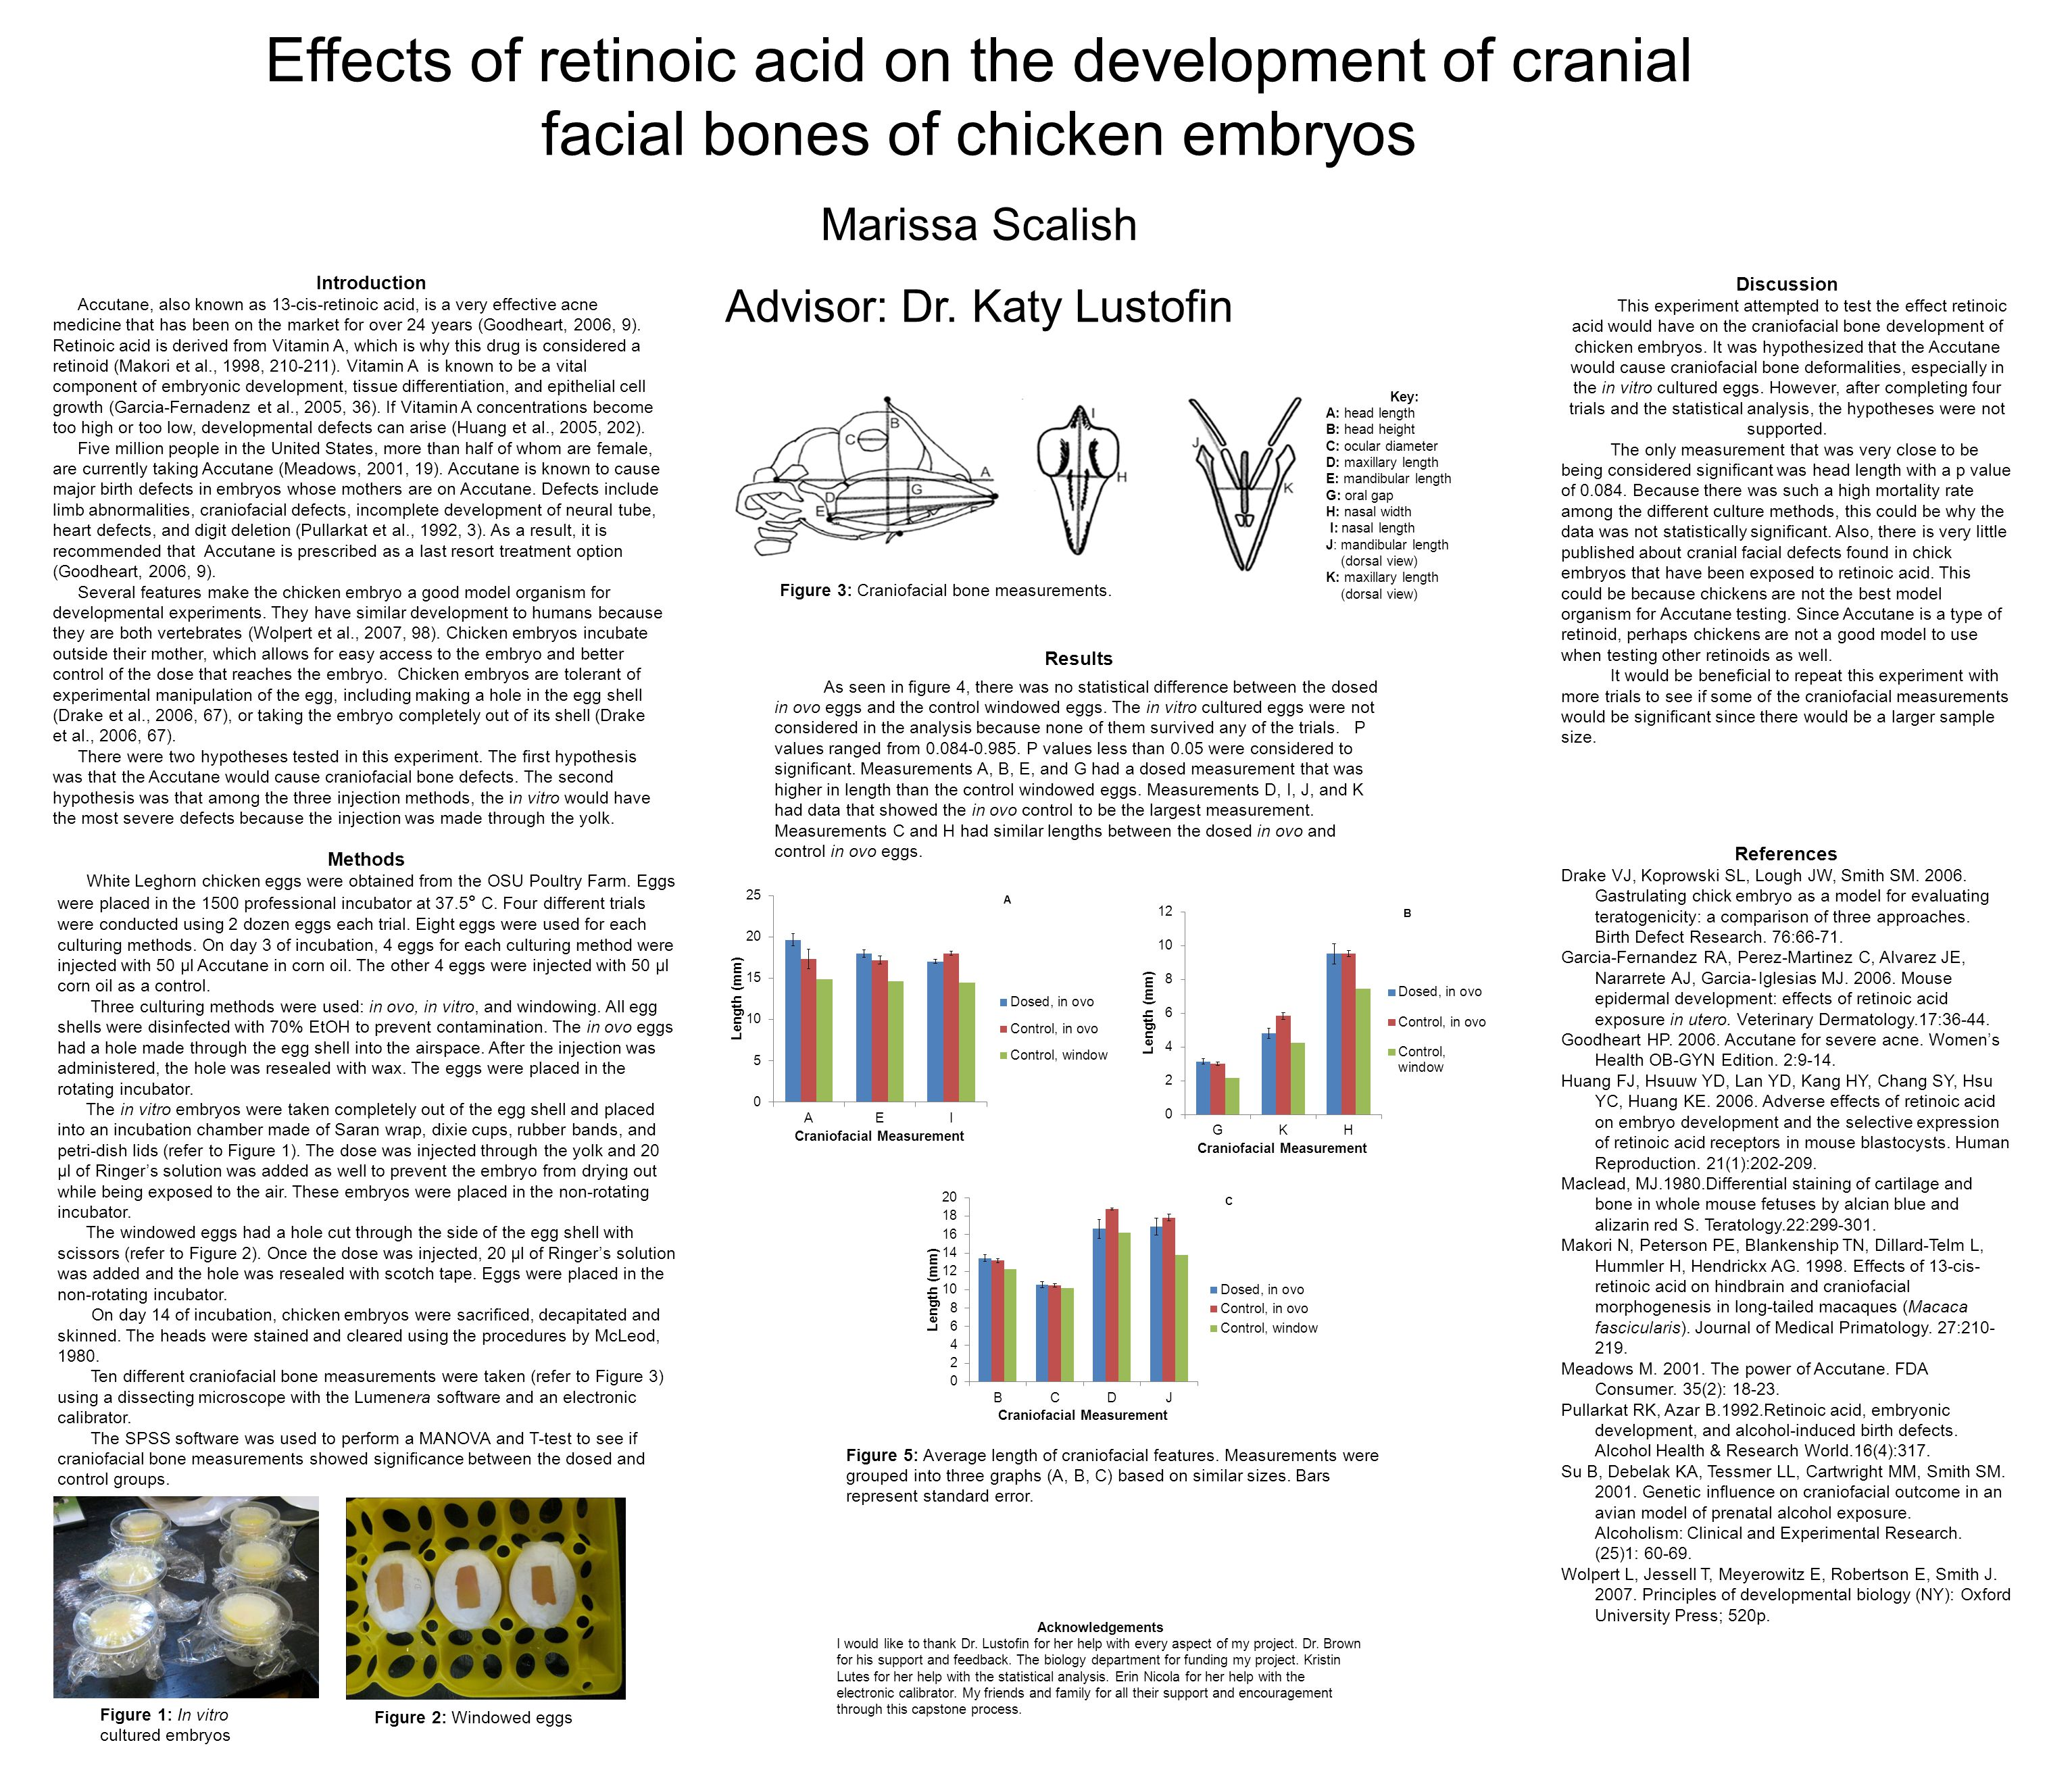 Effects of retinoic acid on the development of cranial facial bones of chicken embryos Marissa Scalish Advisor: Dr. Katy Lustofin Introduction Accutan